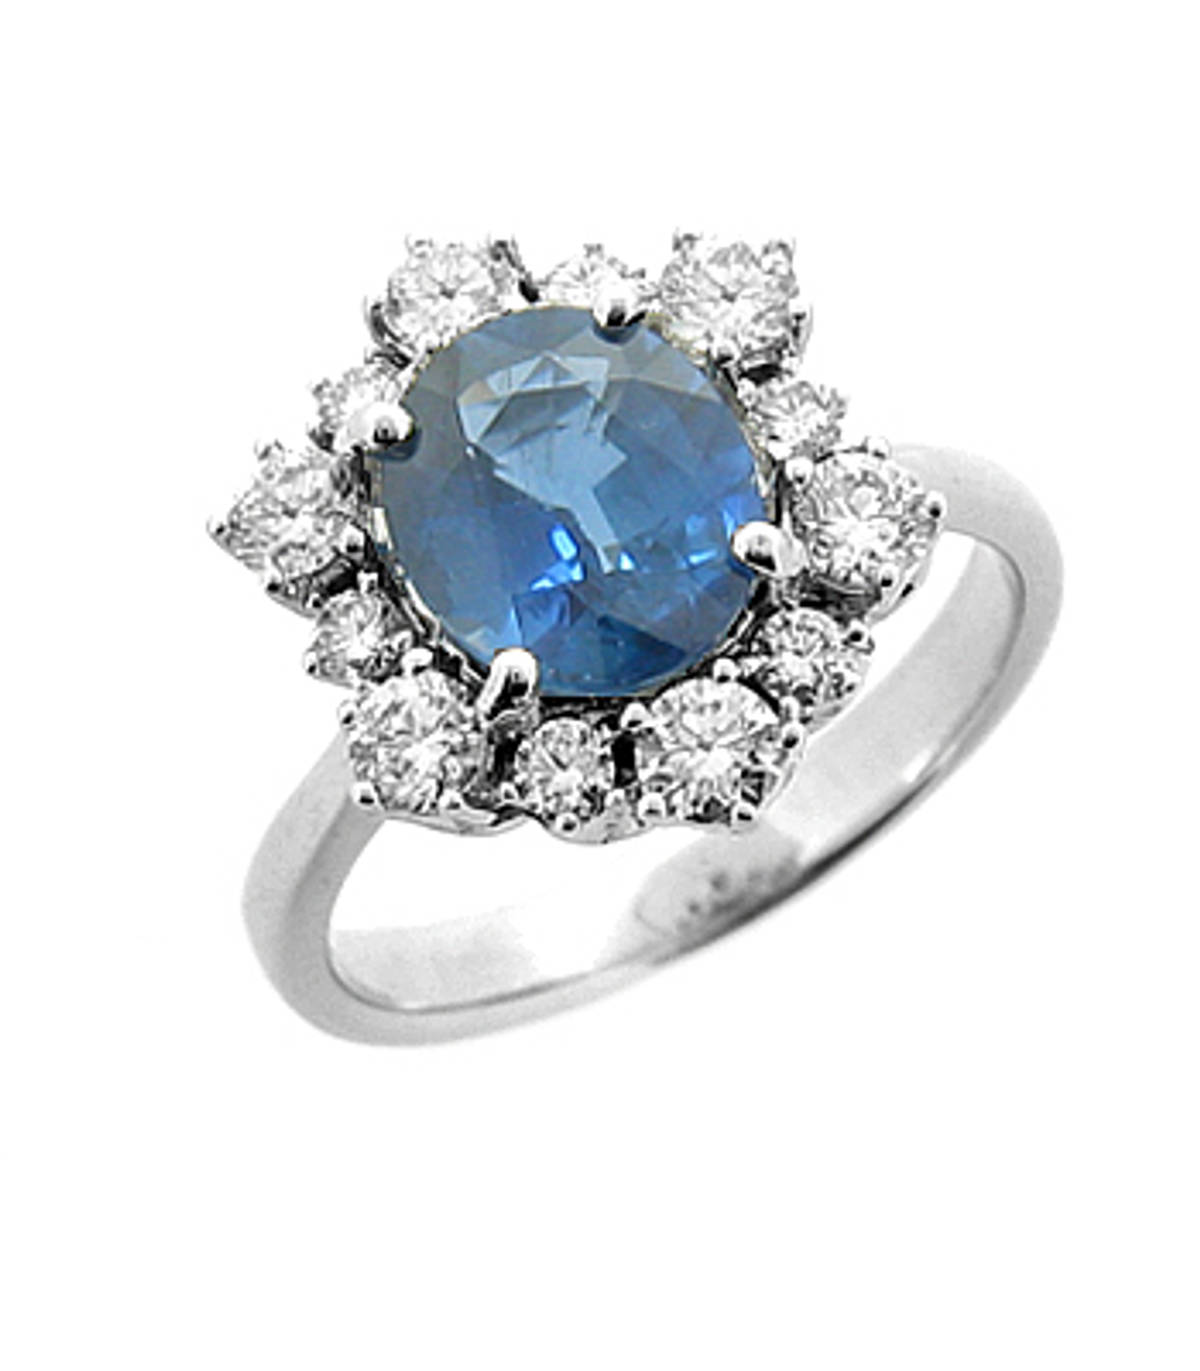 Sapphire and diamond cluster ringPictured item: sapphire: total 2.17ct/diamonds: total 0.70ct set in 18k white gold